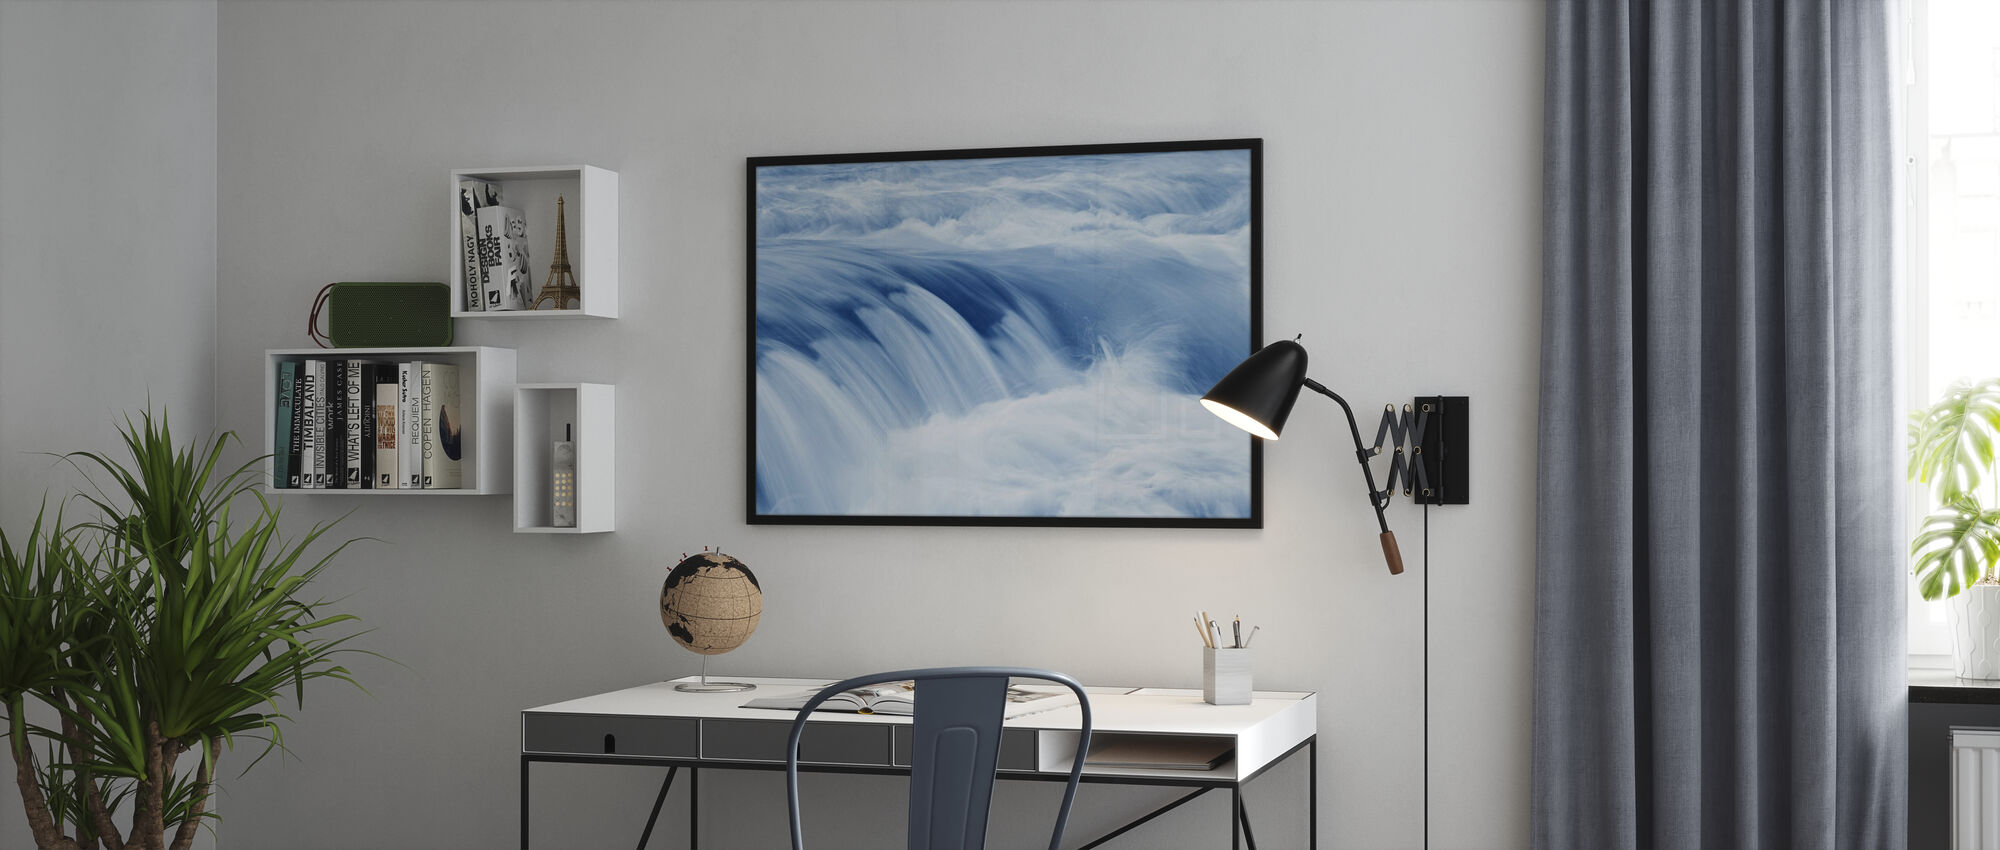 Swiftly Moving Stream - Poster - Office